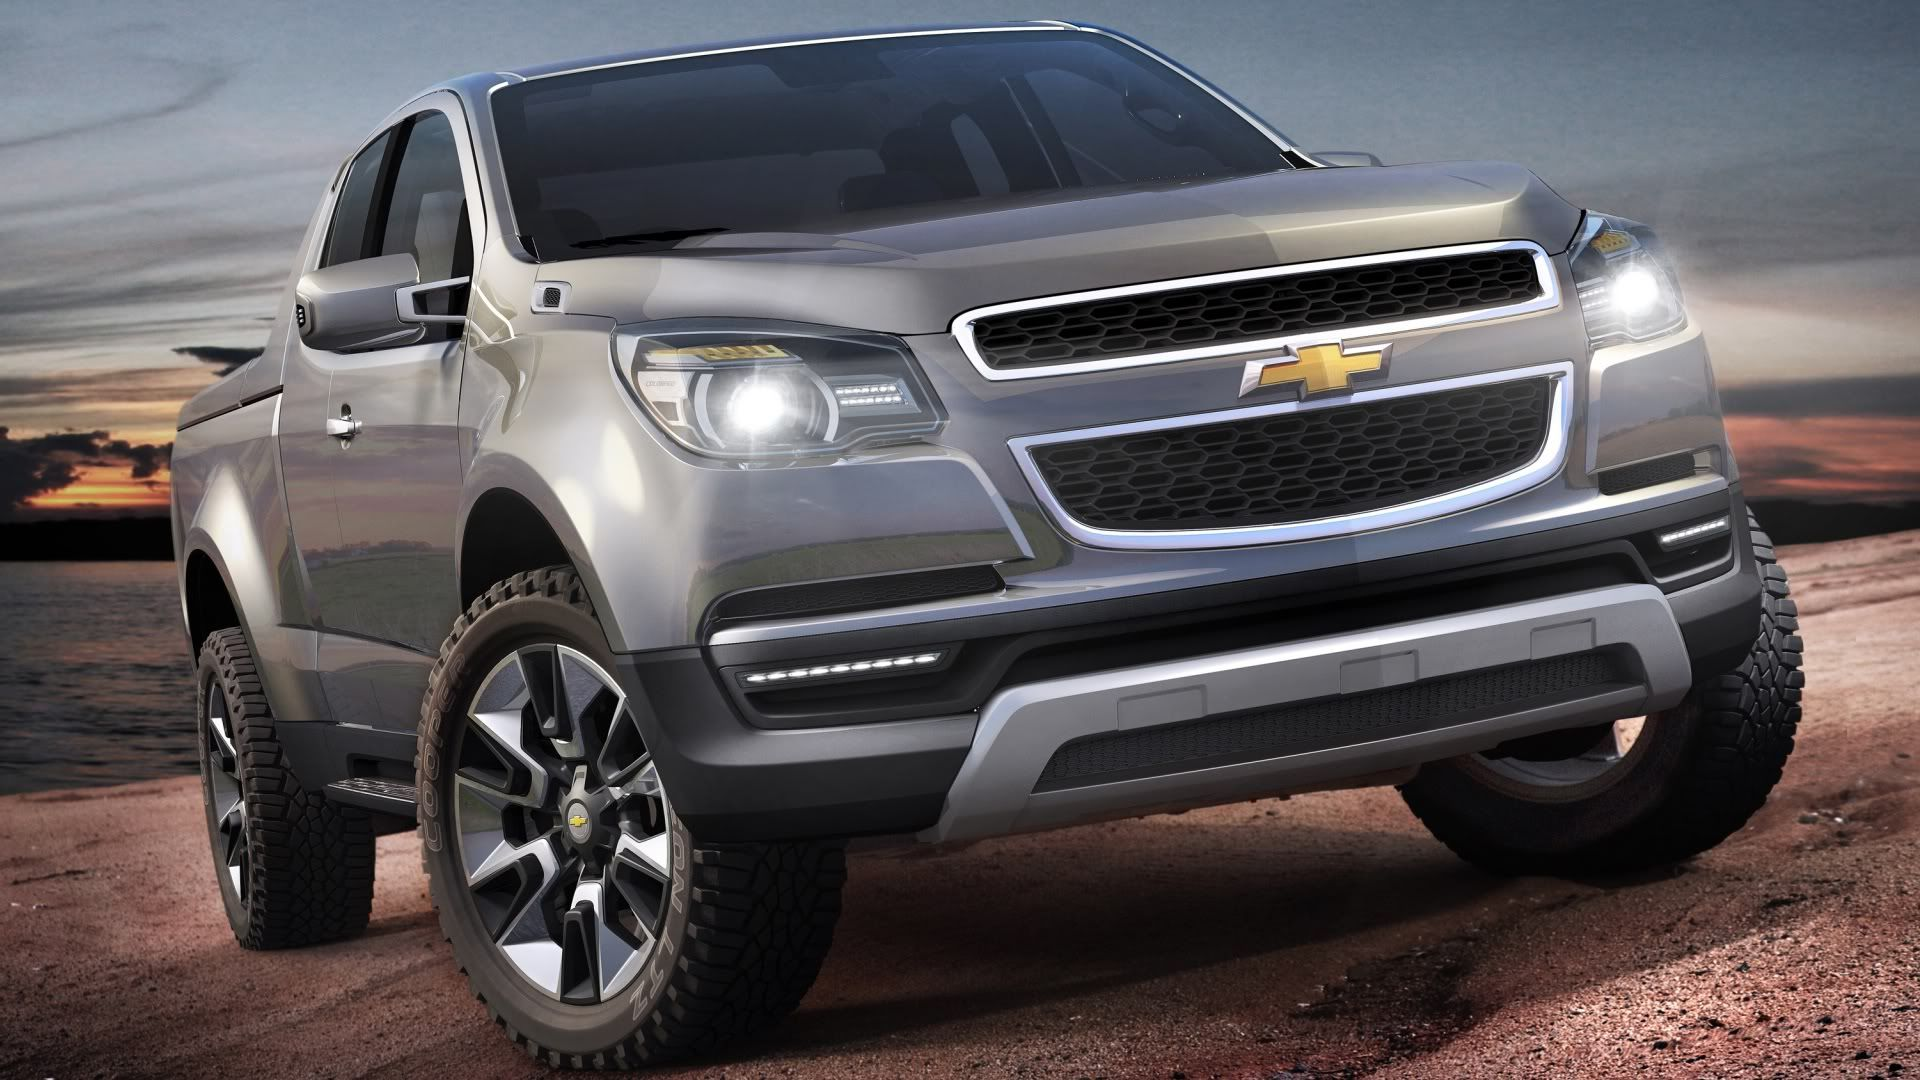 2013 chevrolet colorado chevrolet chevy colorado